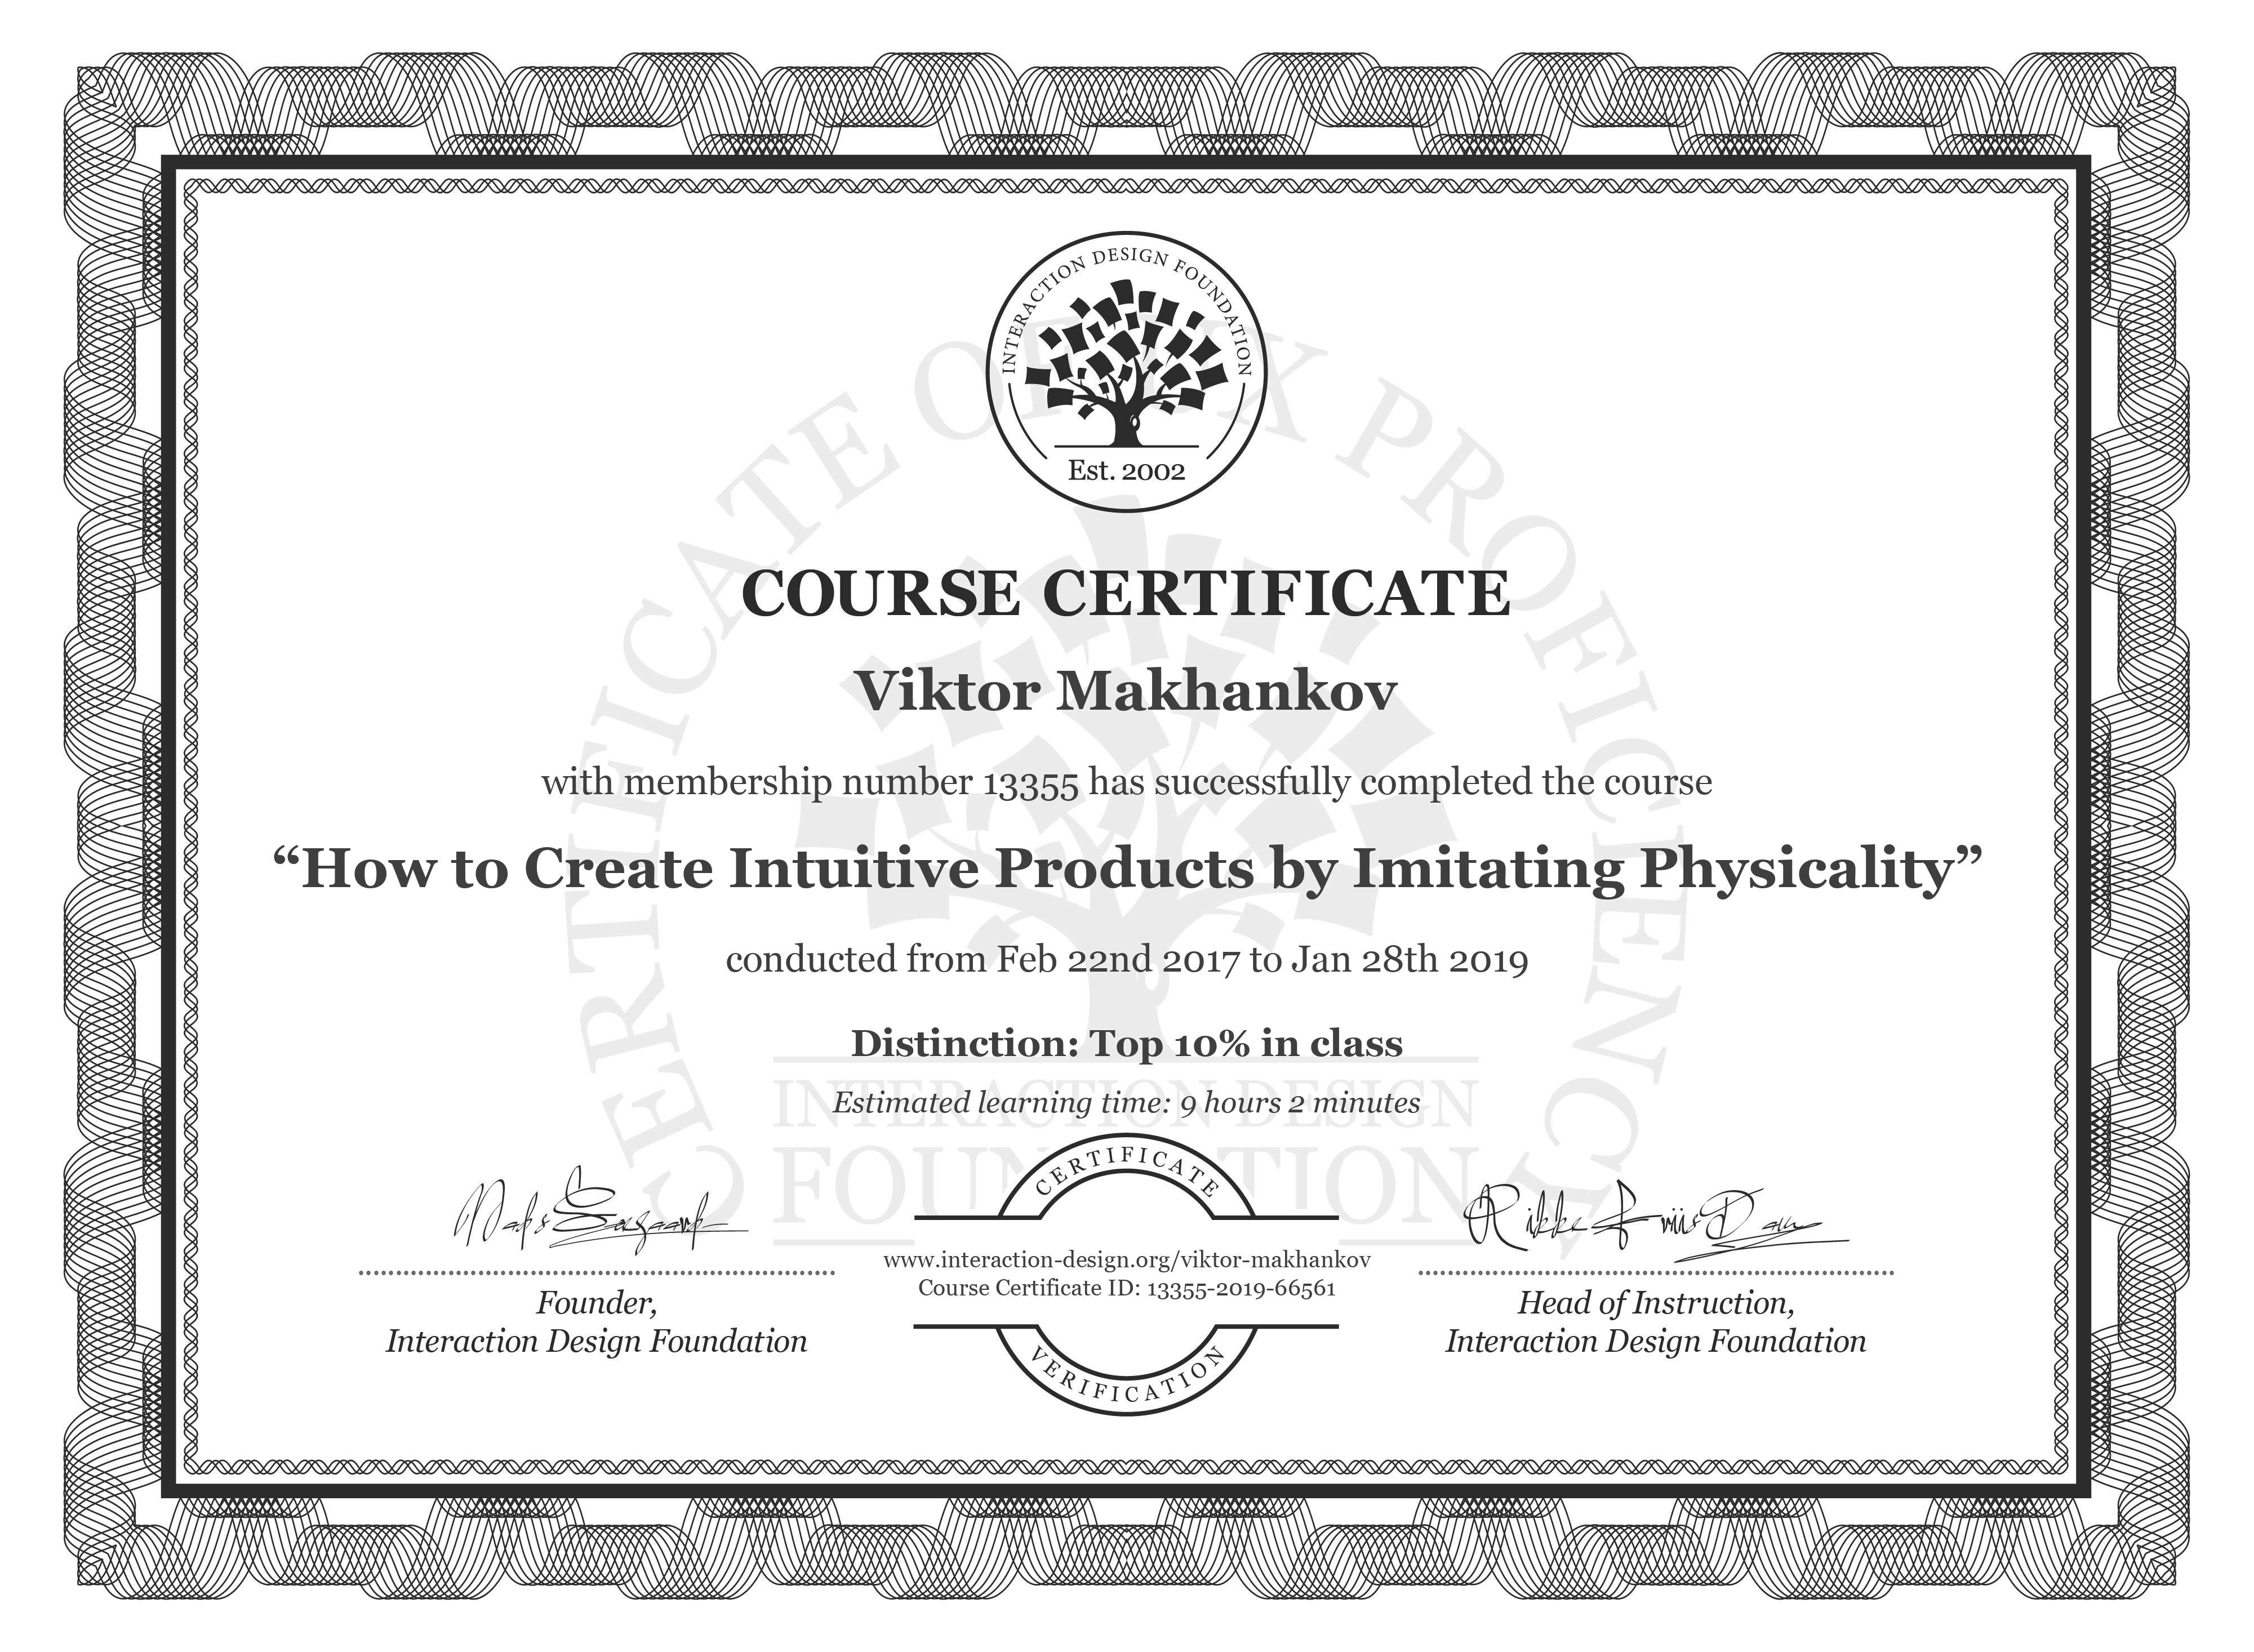 Viktor Makhankov's Course Certificate: How to Create Intuitive Products by Imitating Physicality